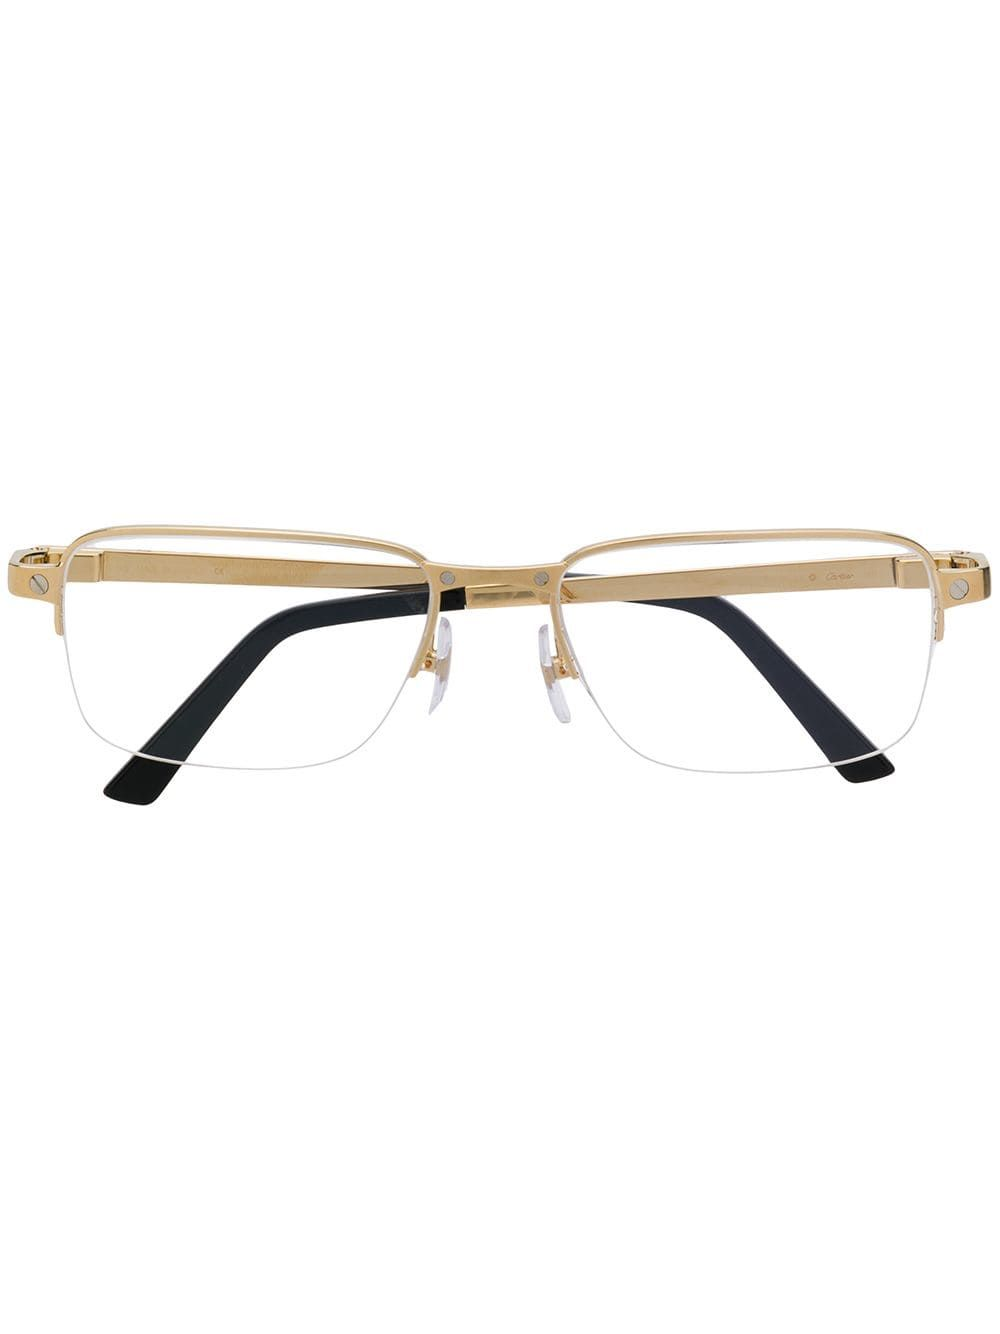 Cartier Rectangle Frame Glasses In Gold Modesens Glasses Cartier Gold Tone Metal